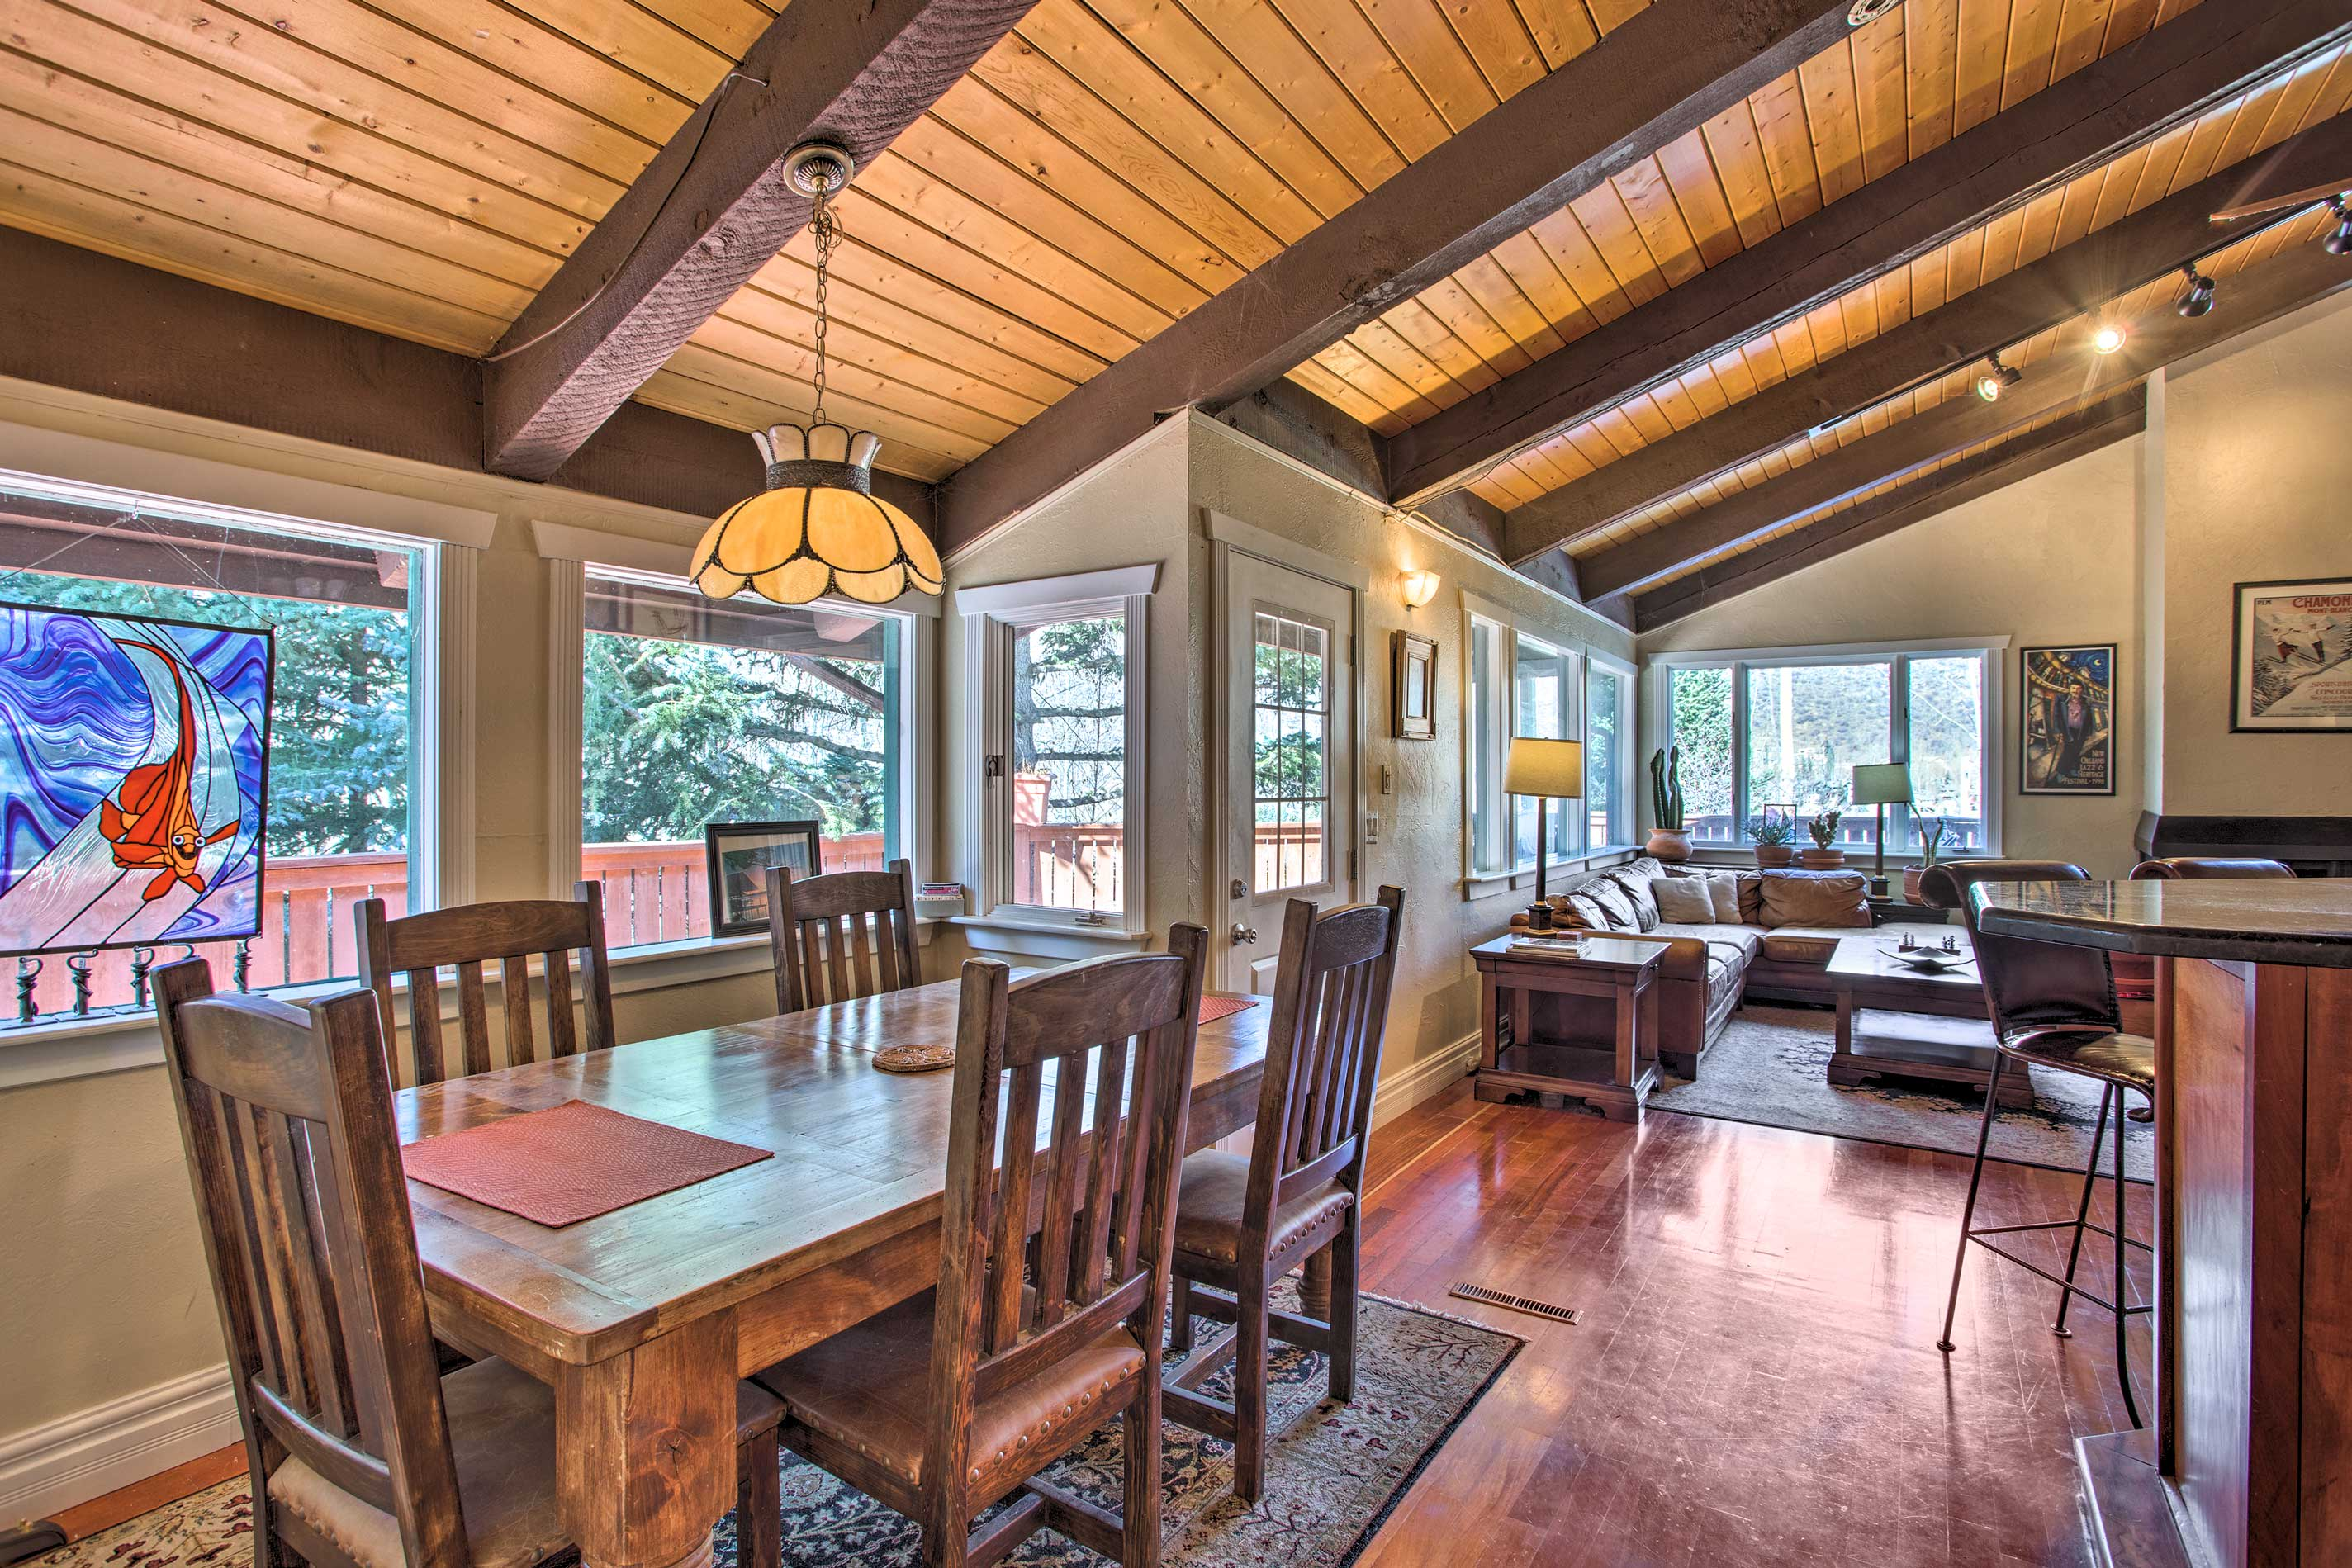 Up to 4 guests can enjoy all this vacation rental has to offer.